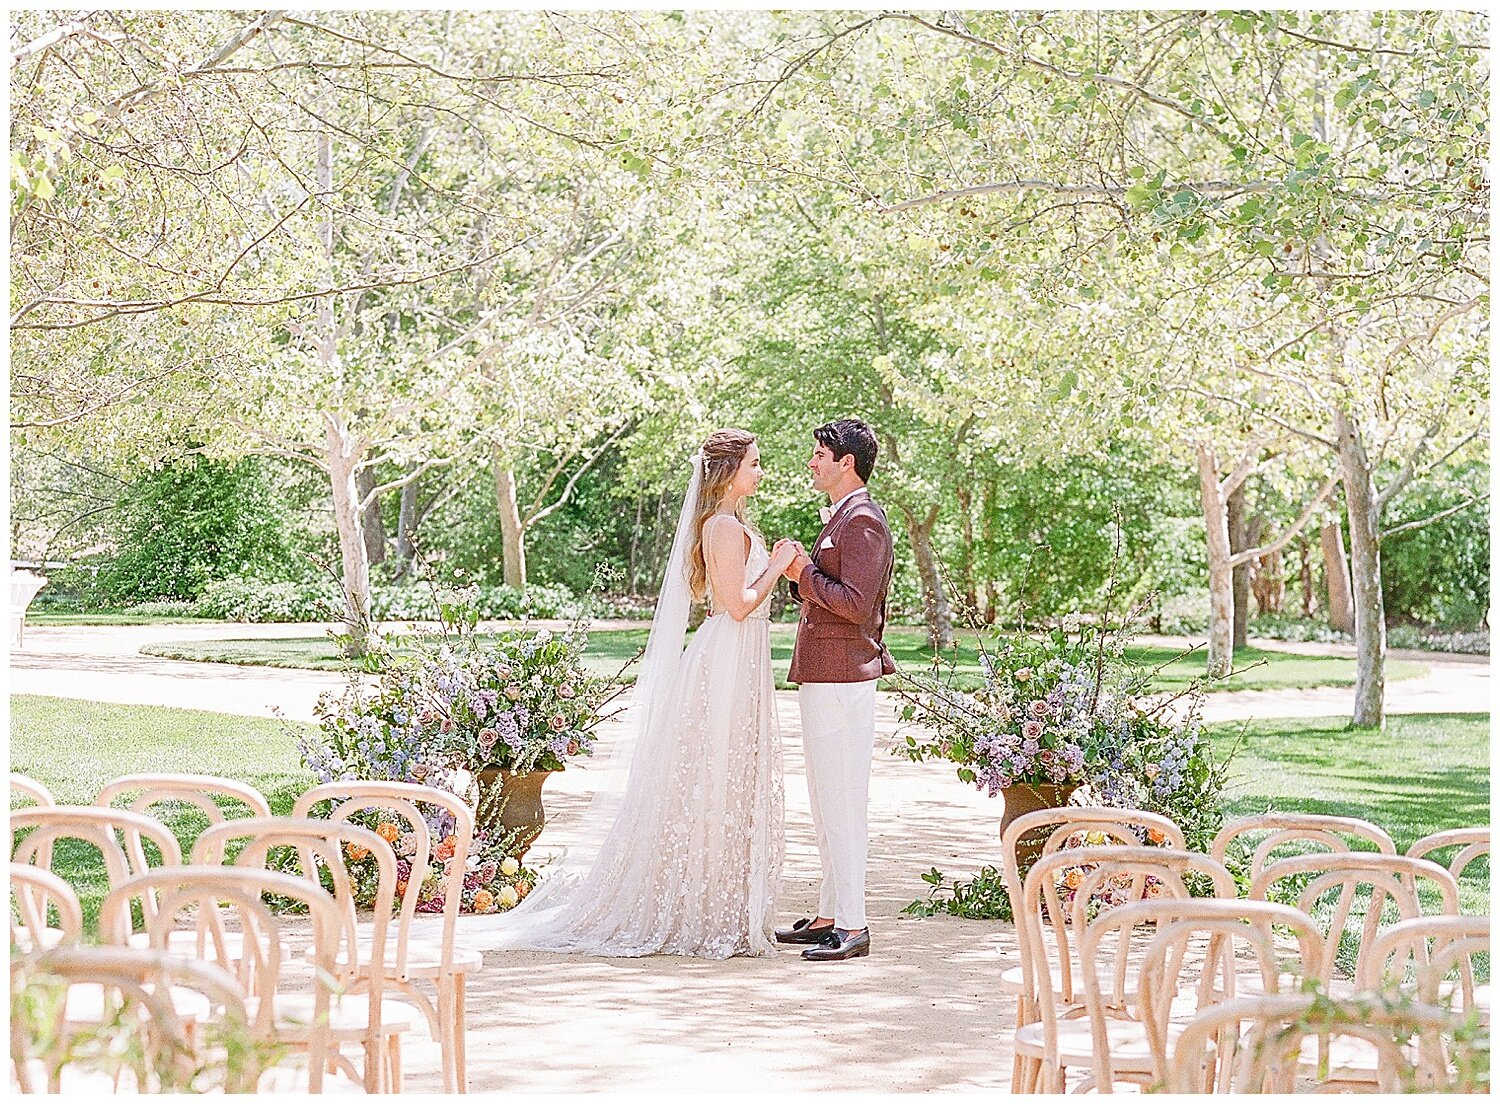 Janine_Licare_Photography_San_Francisco_Kestrel_Park_Santa_Ynez_Sunstone_Villa_Winer_Wedding_Photographer_Meadowood_Napa_Valley_Sonoma_0062.jpg